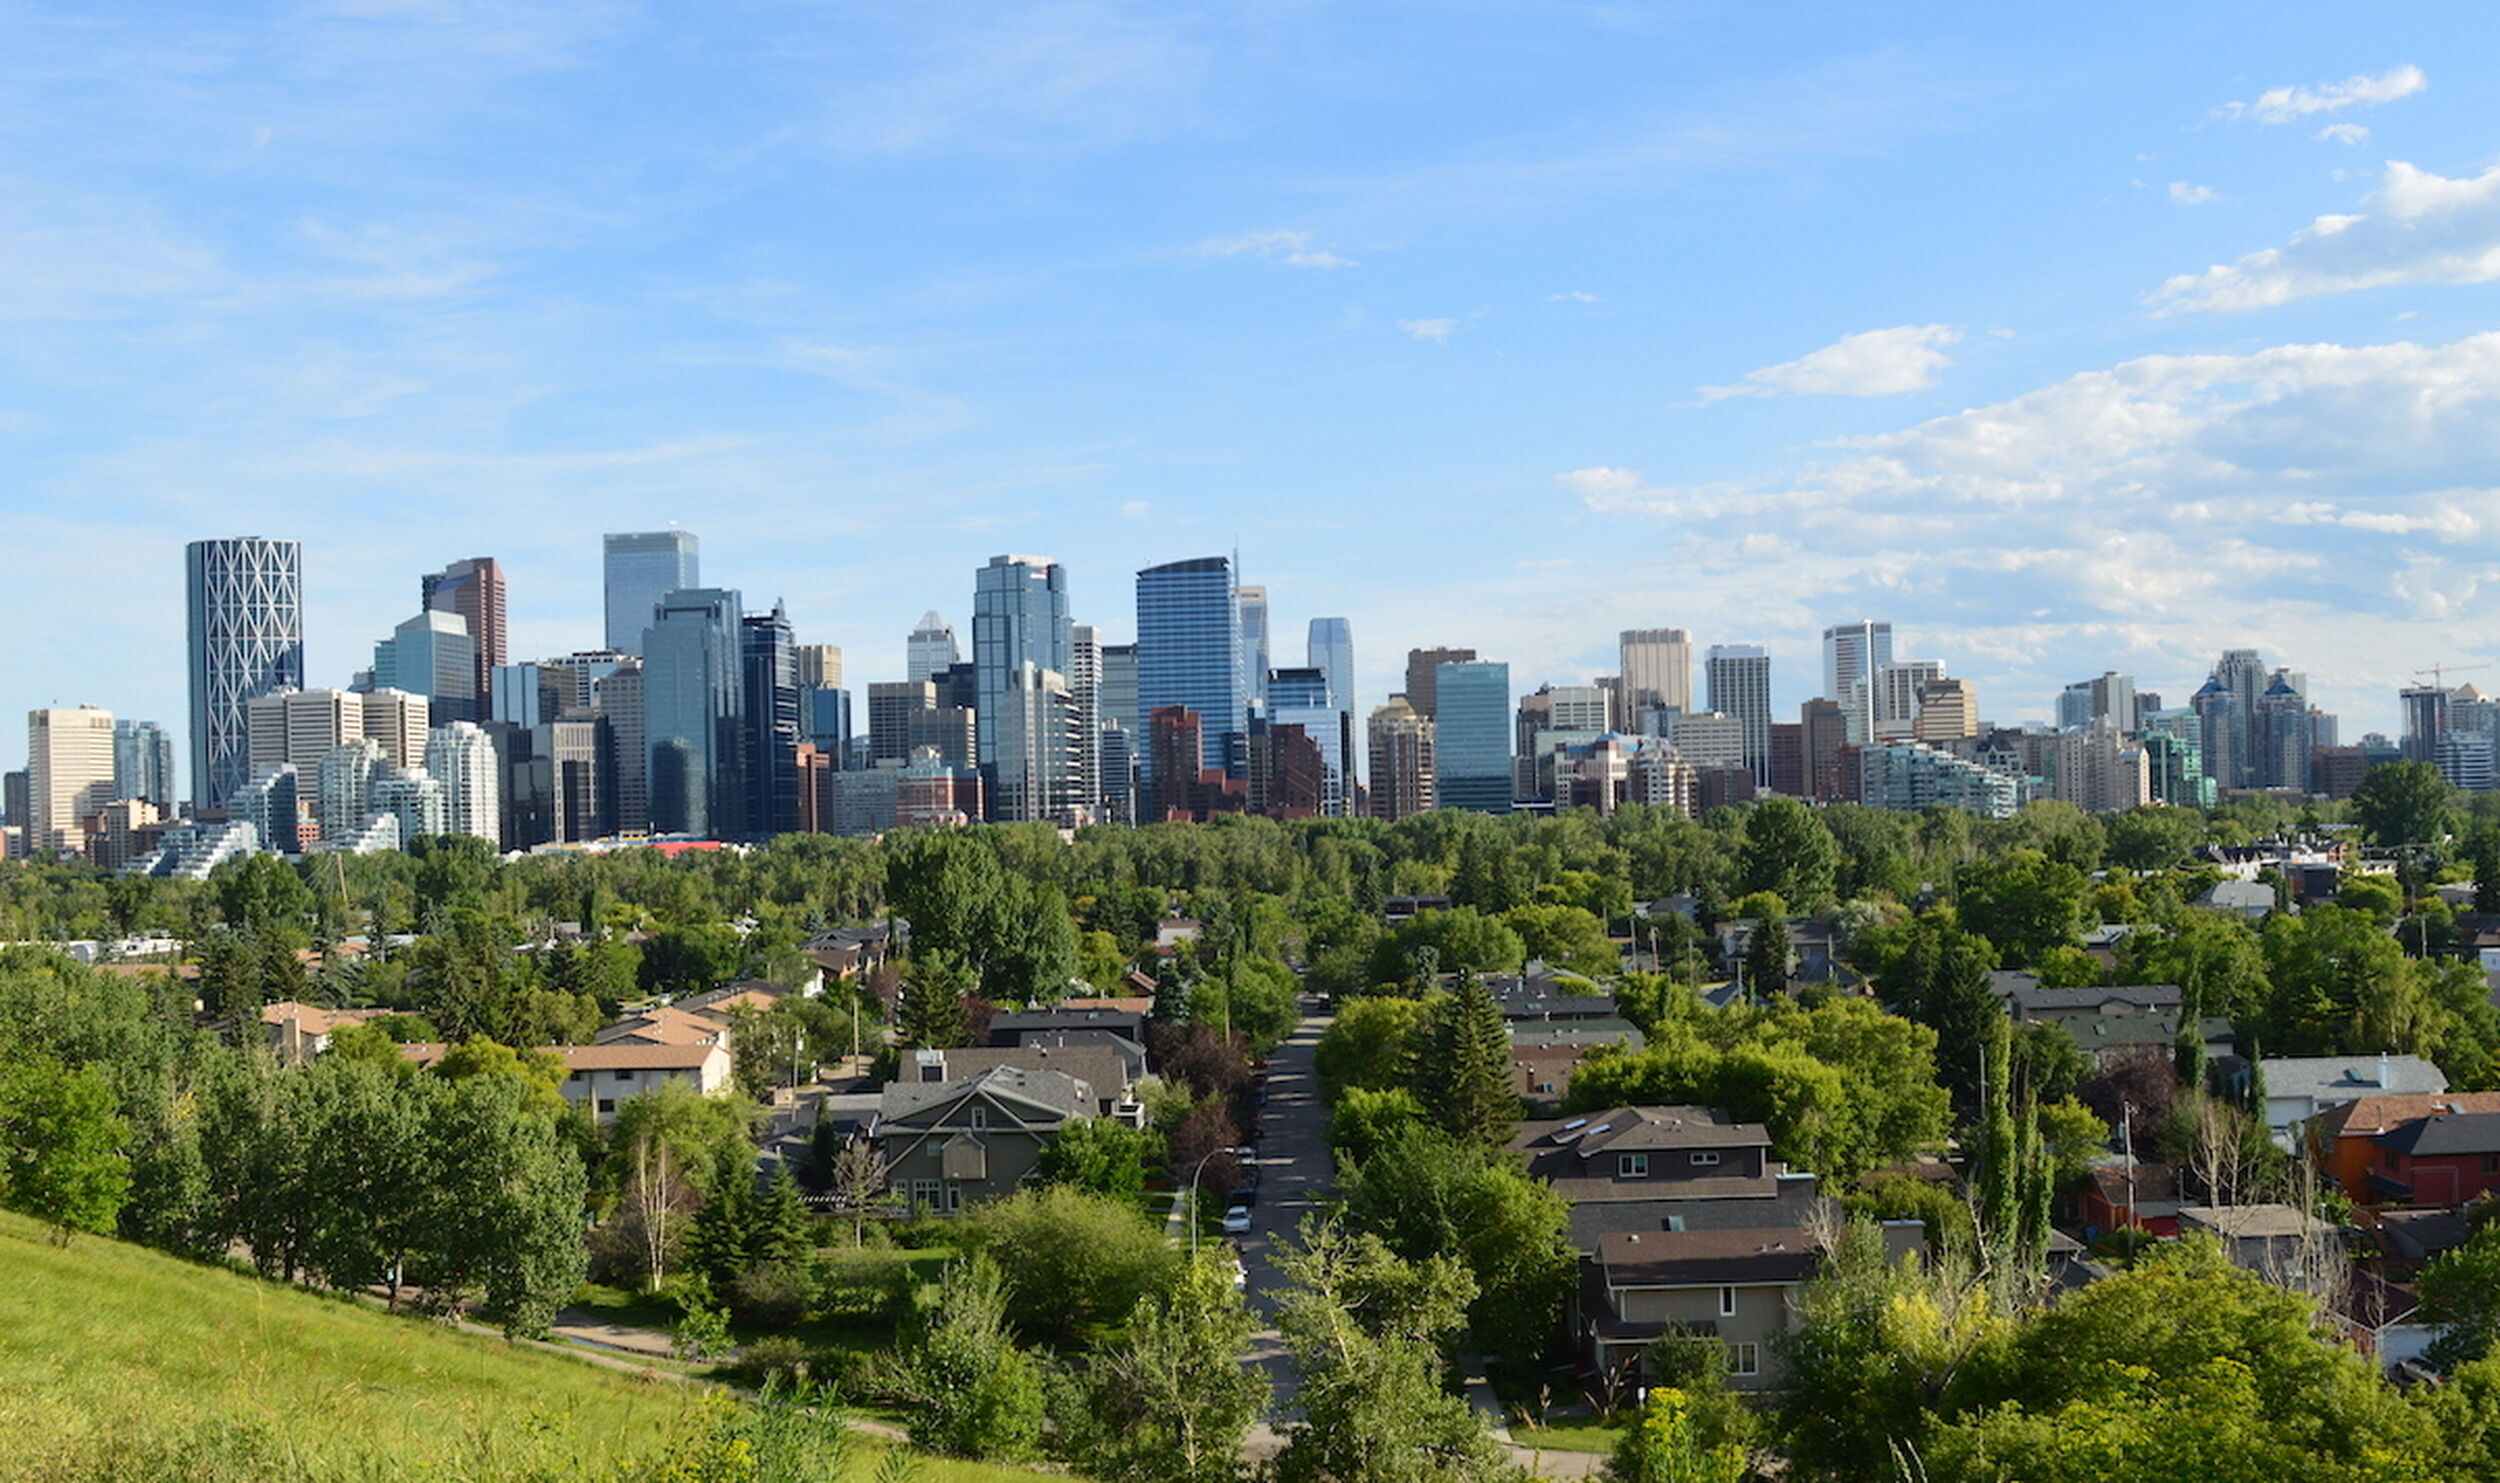 Calgary Plans To Double Its Urban Forest The Sprawl